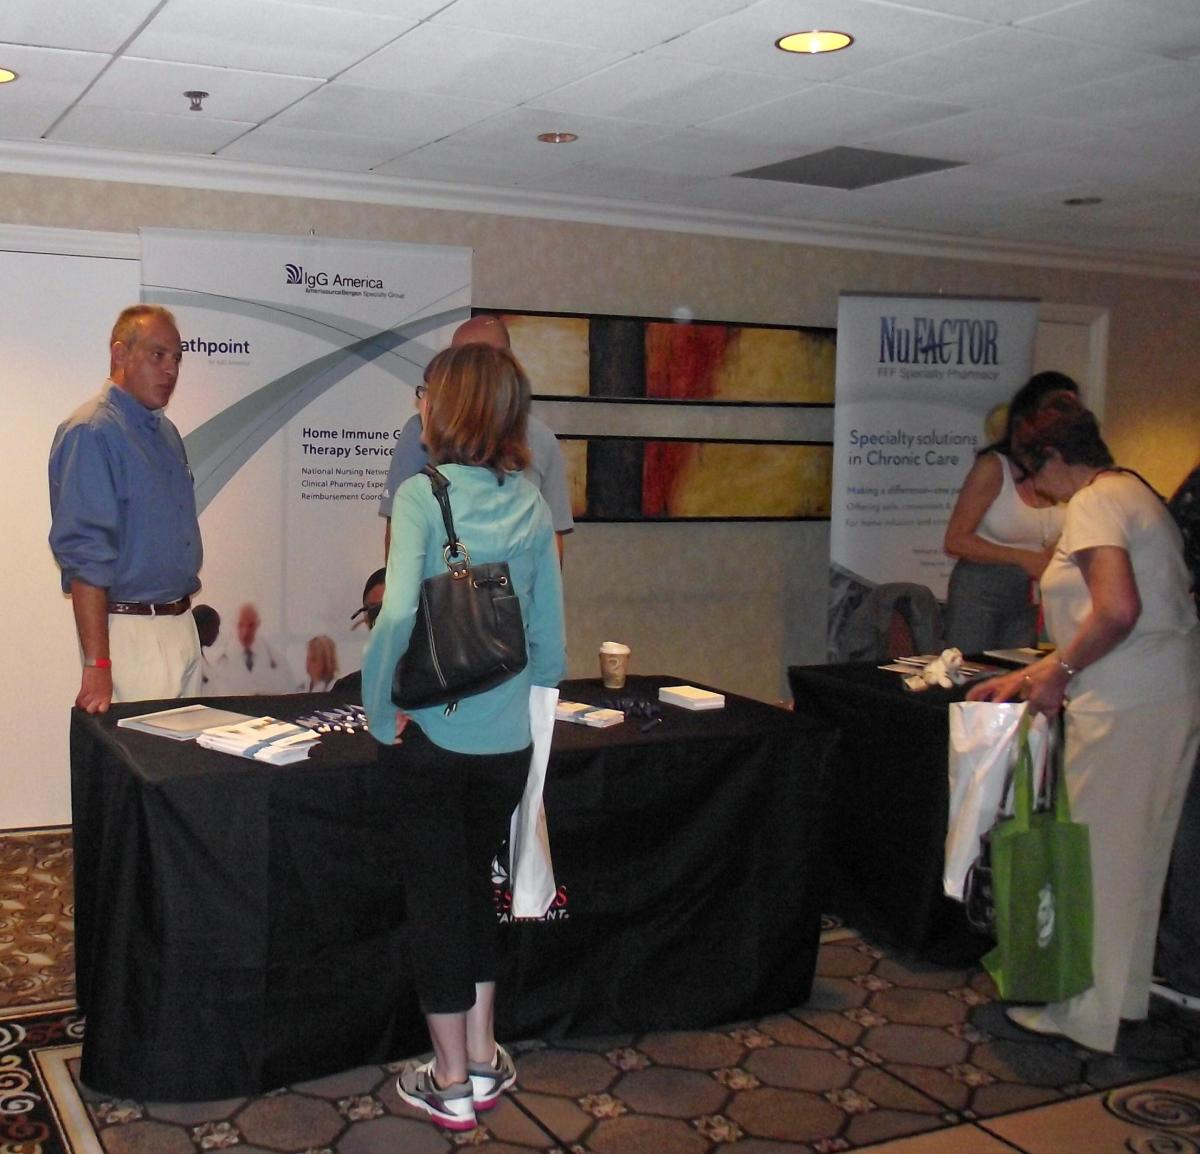 Patients receiving information at a conference display.